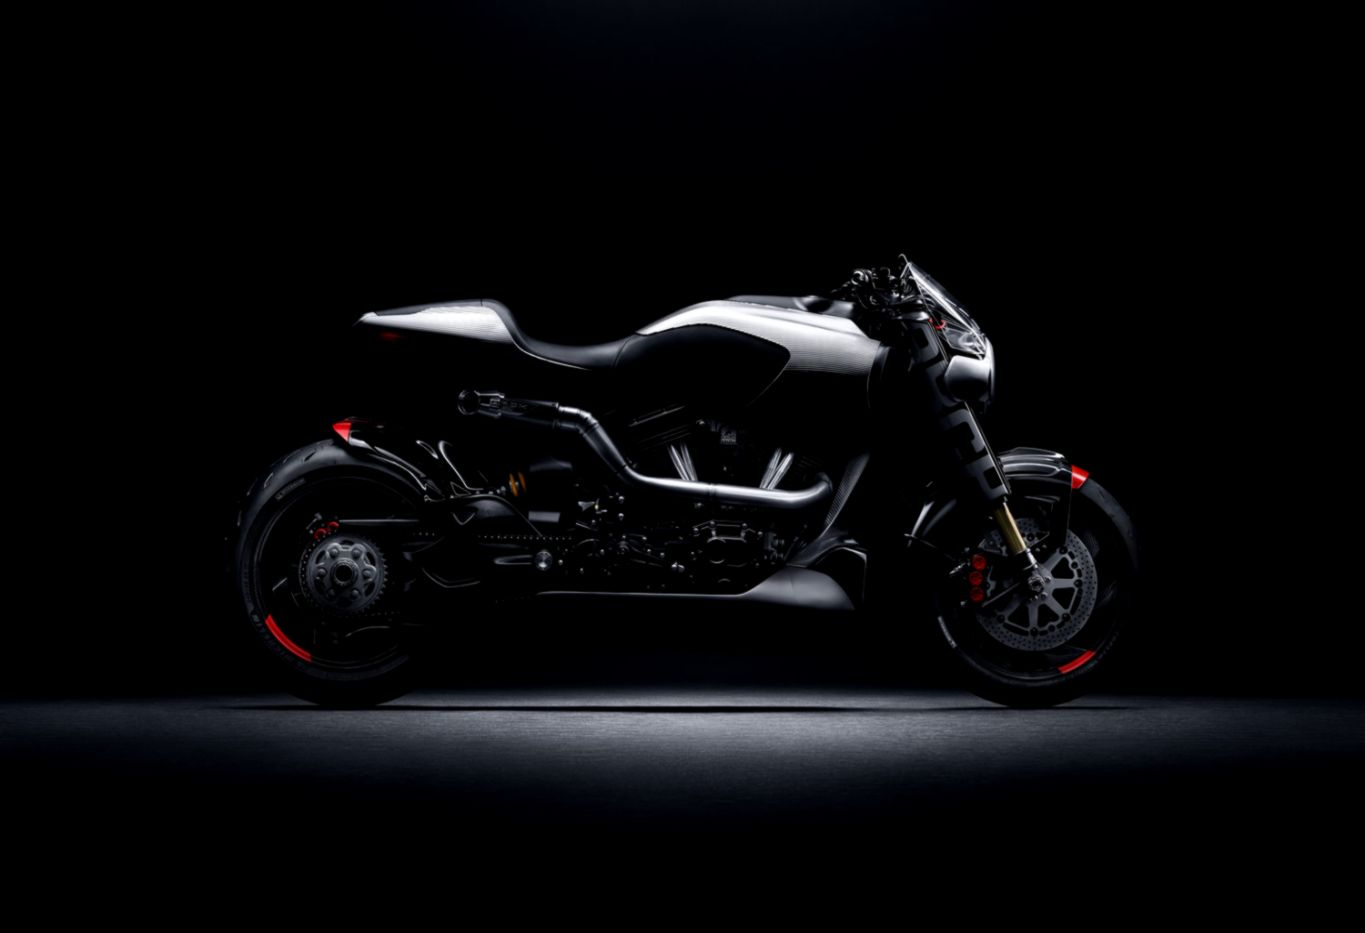 METHOD 143 — Arch Motorcycle